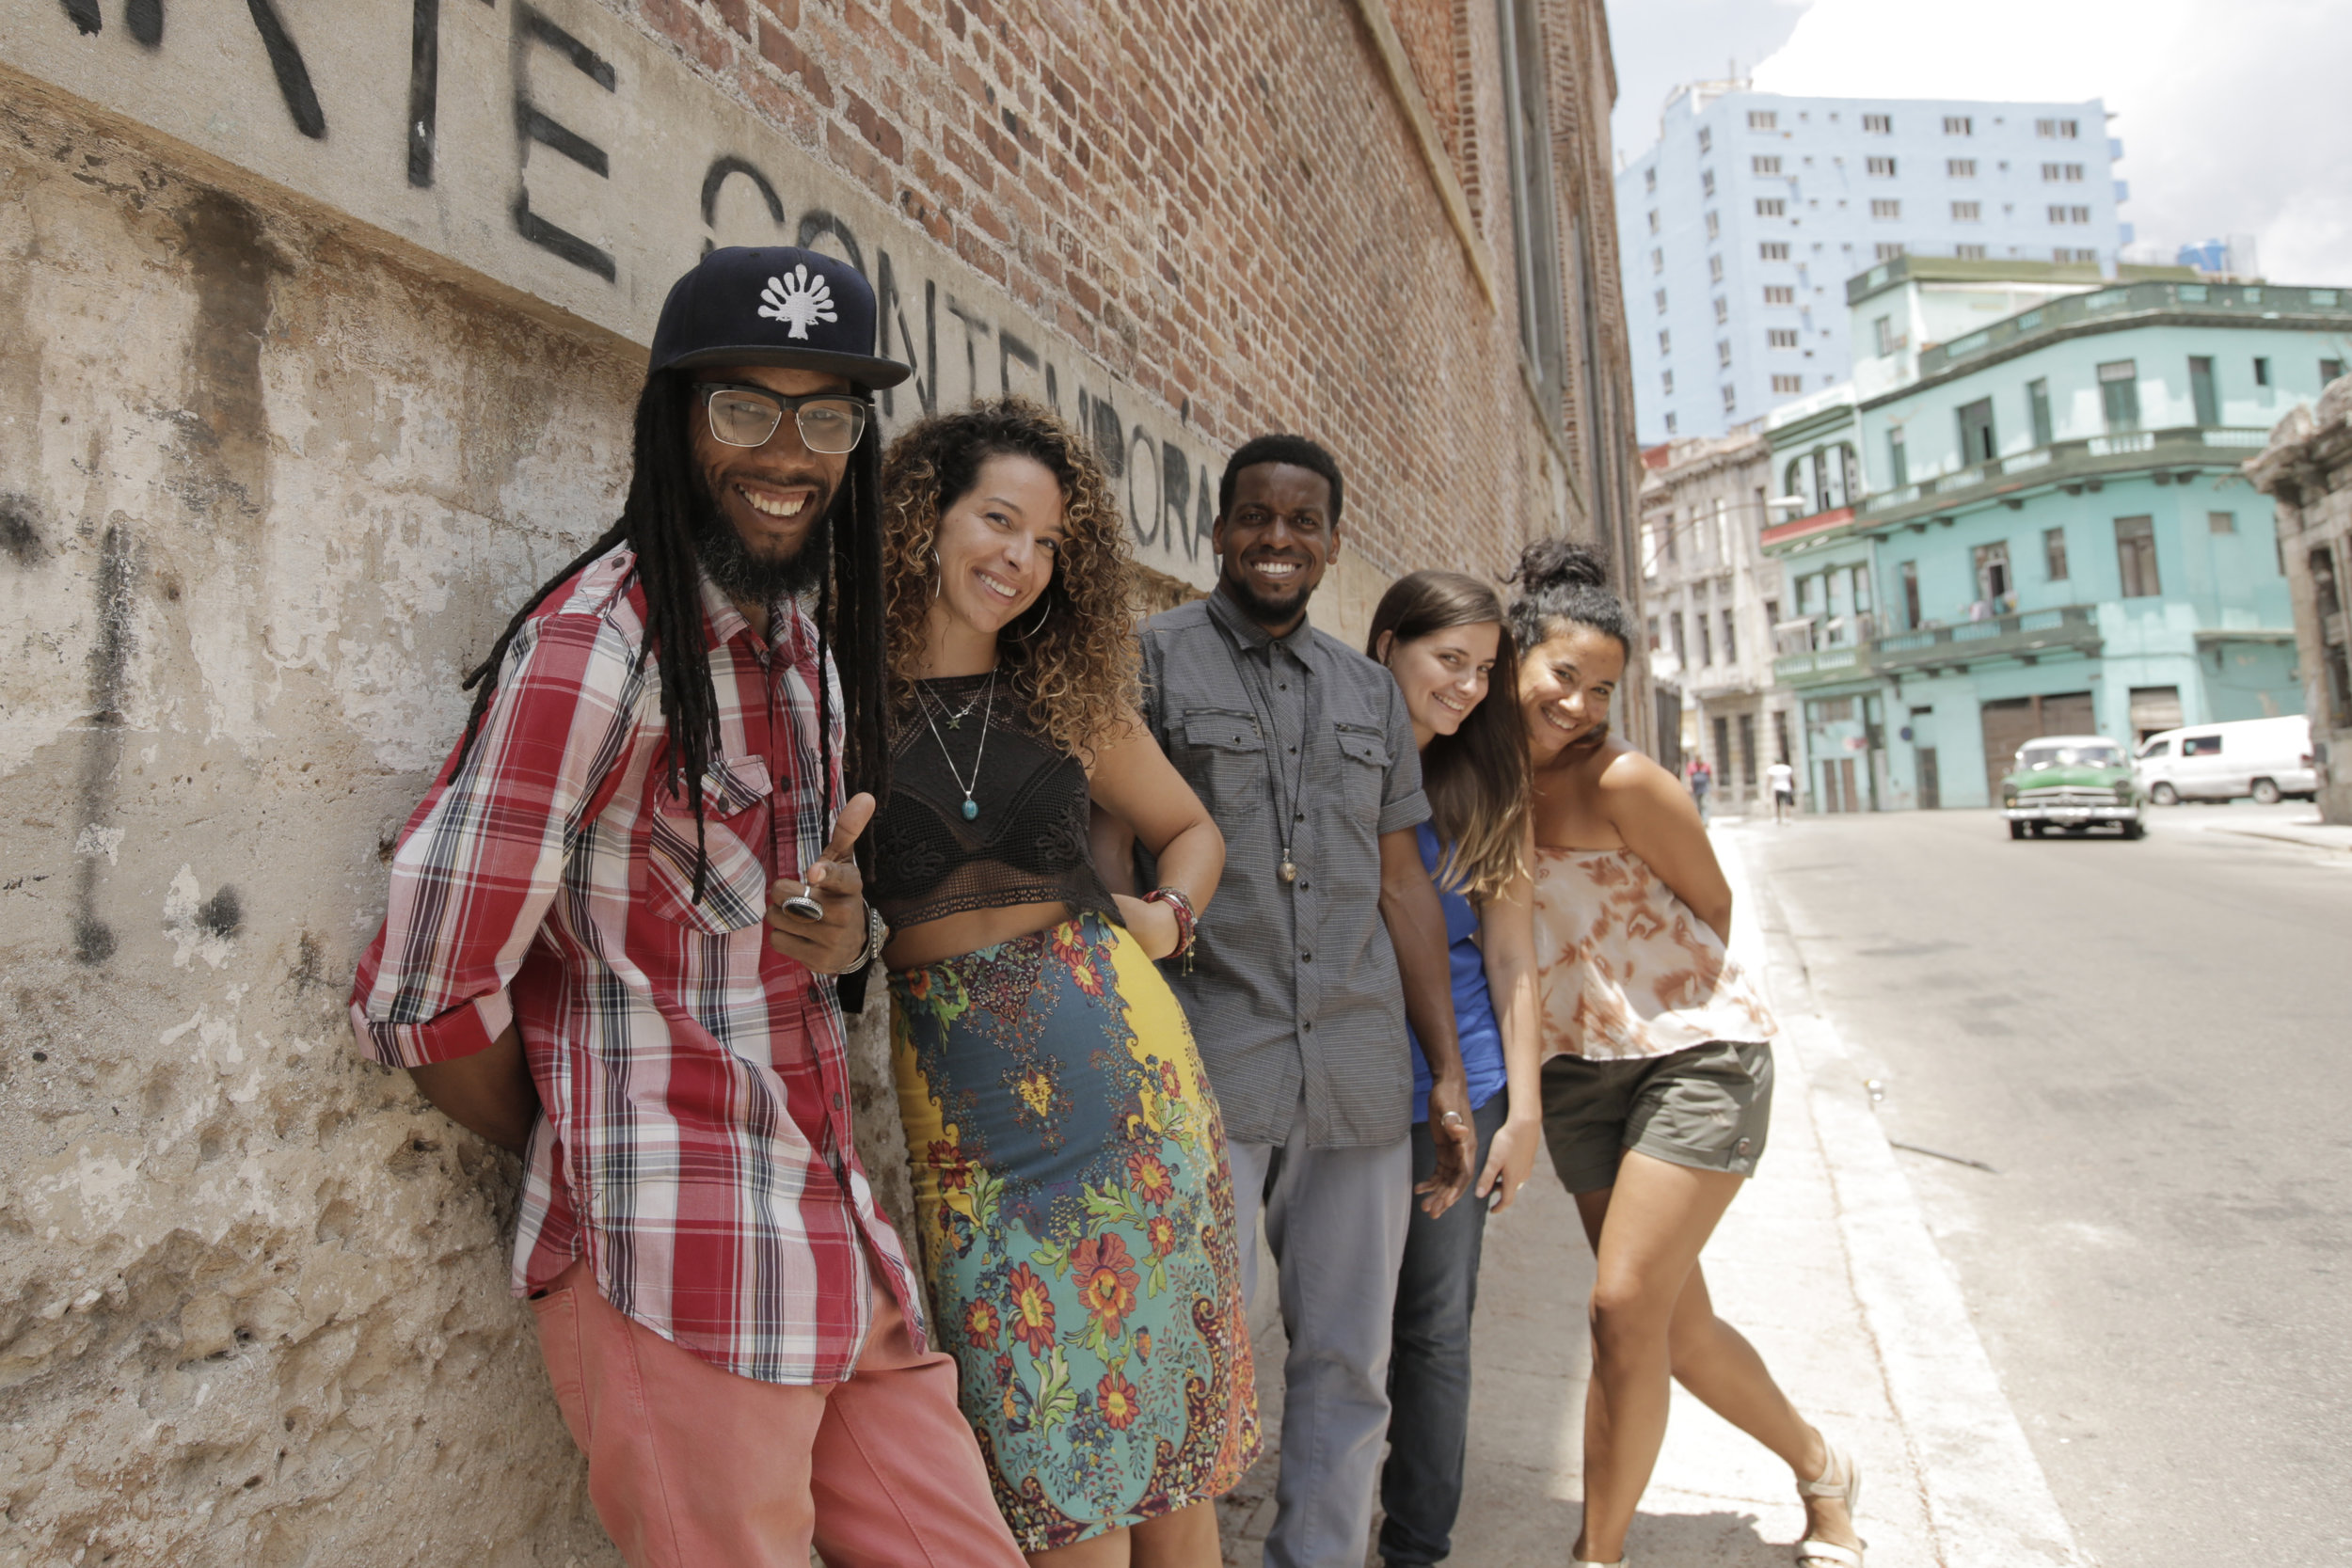 Guámpara   is one of only a few independent record labels in all of Cuba, and the only Afrocuban and woman-owned label.